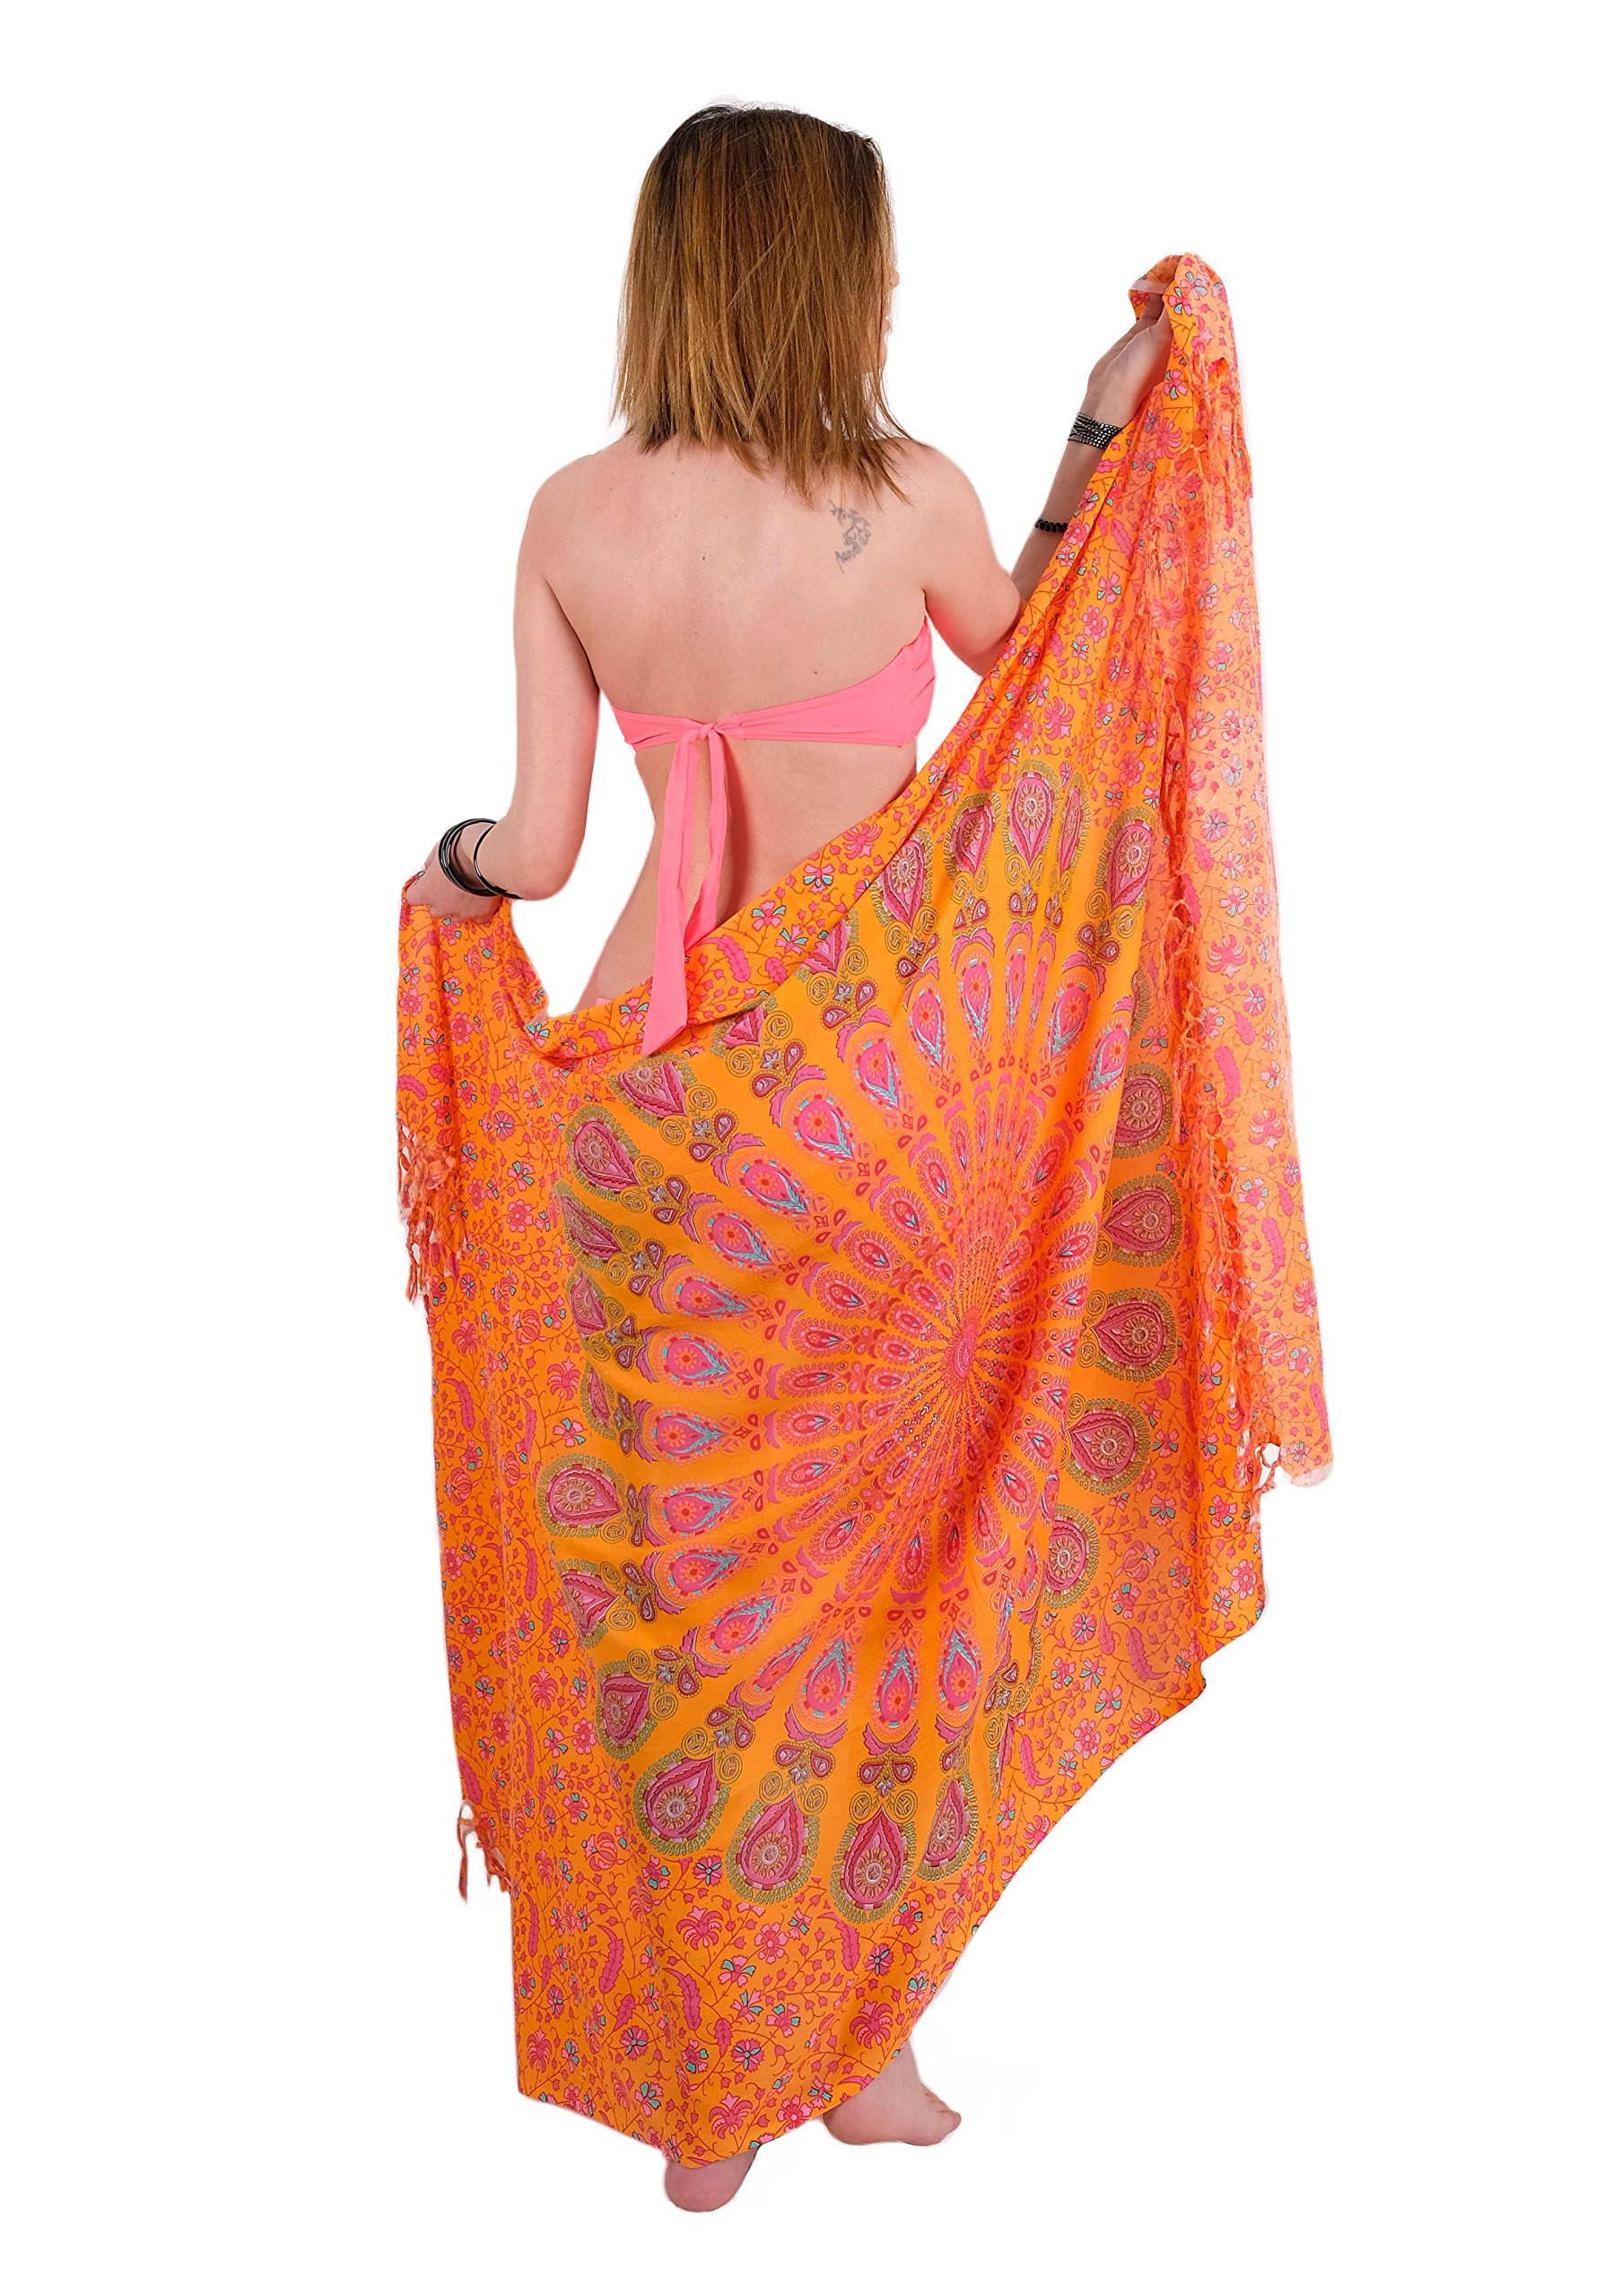 Boho Chic Sarong Gorgeous Hand-Printed Bohemian Pareo Endlessly Versatile Uses Bikini Swimsuit Cover Up,Beach Blanket,Tapestry,Dress,Wall Hanging,Throw by Mandala Life ART,Blue Peacock,Large